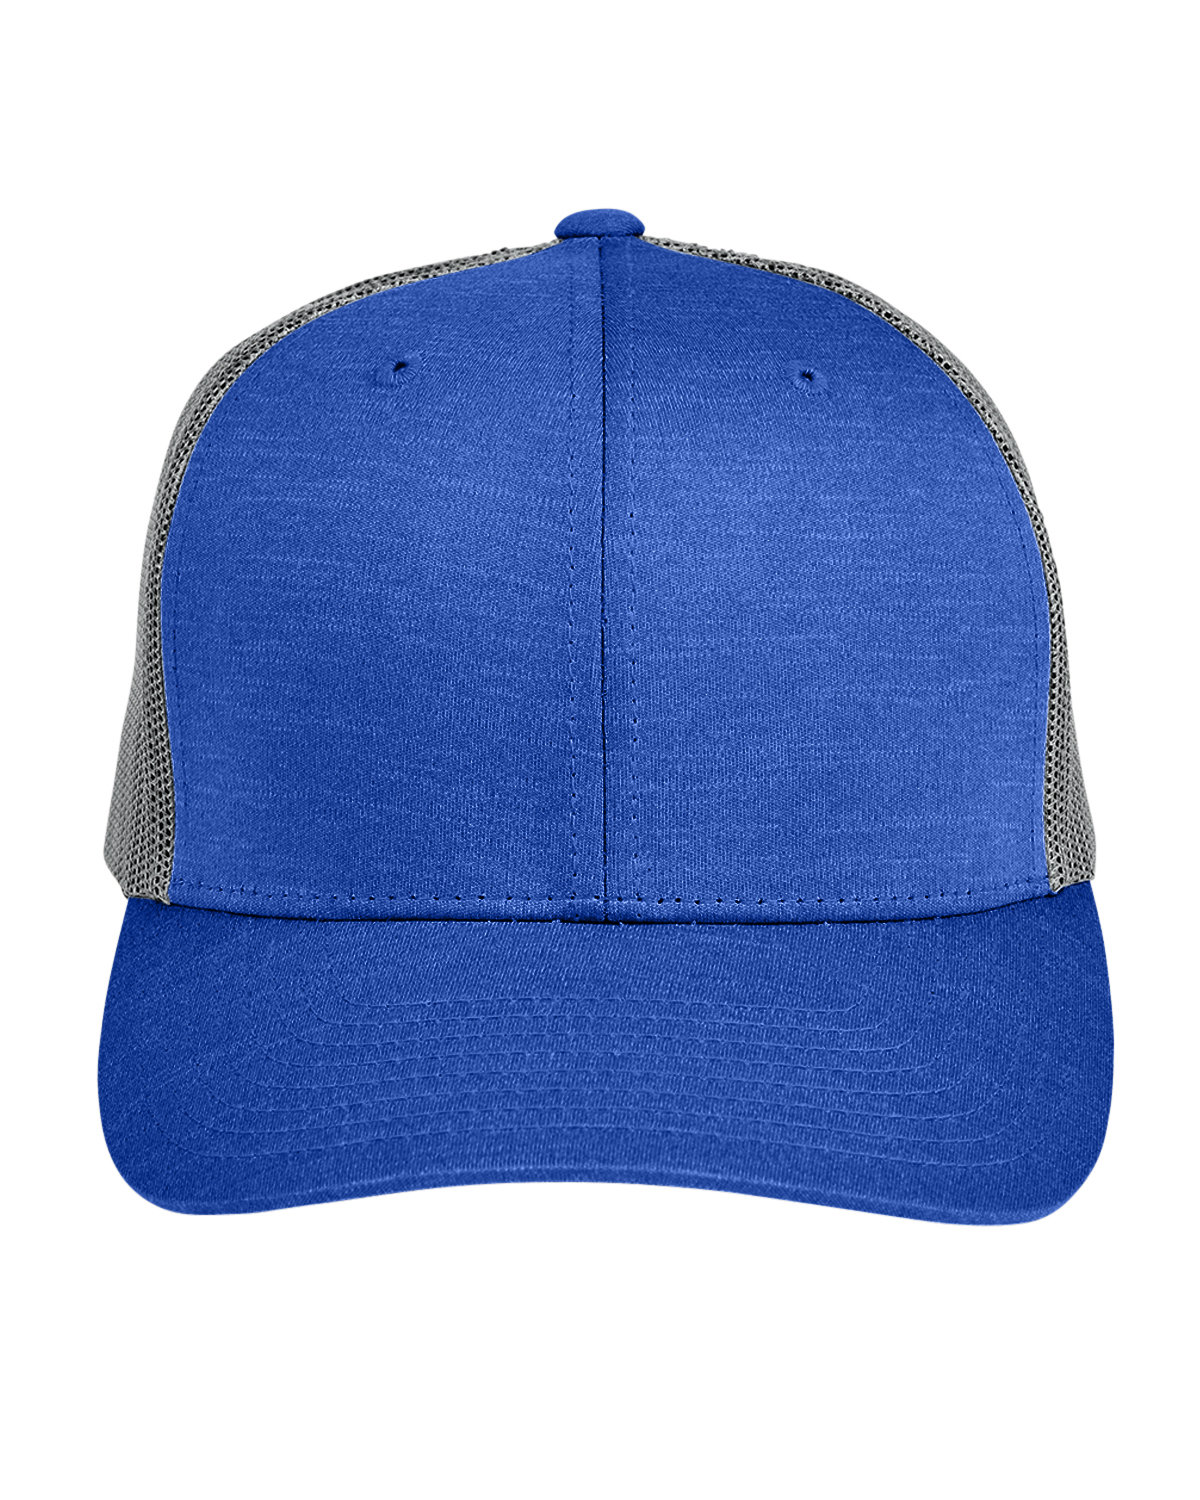 Team 365 by Yupoong® Adult Zone Sonic Heather Trucker Cap SP RYL HT/ SP GR